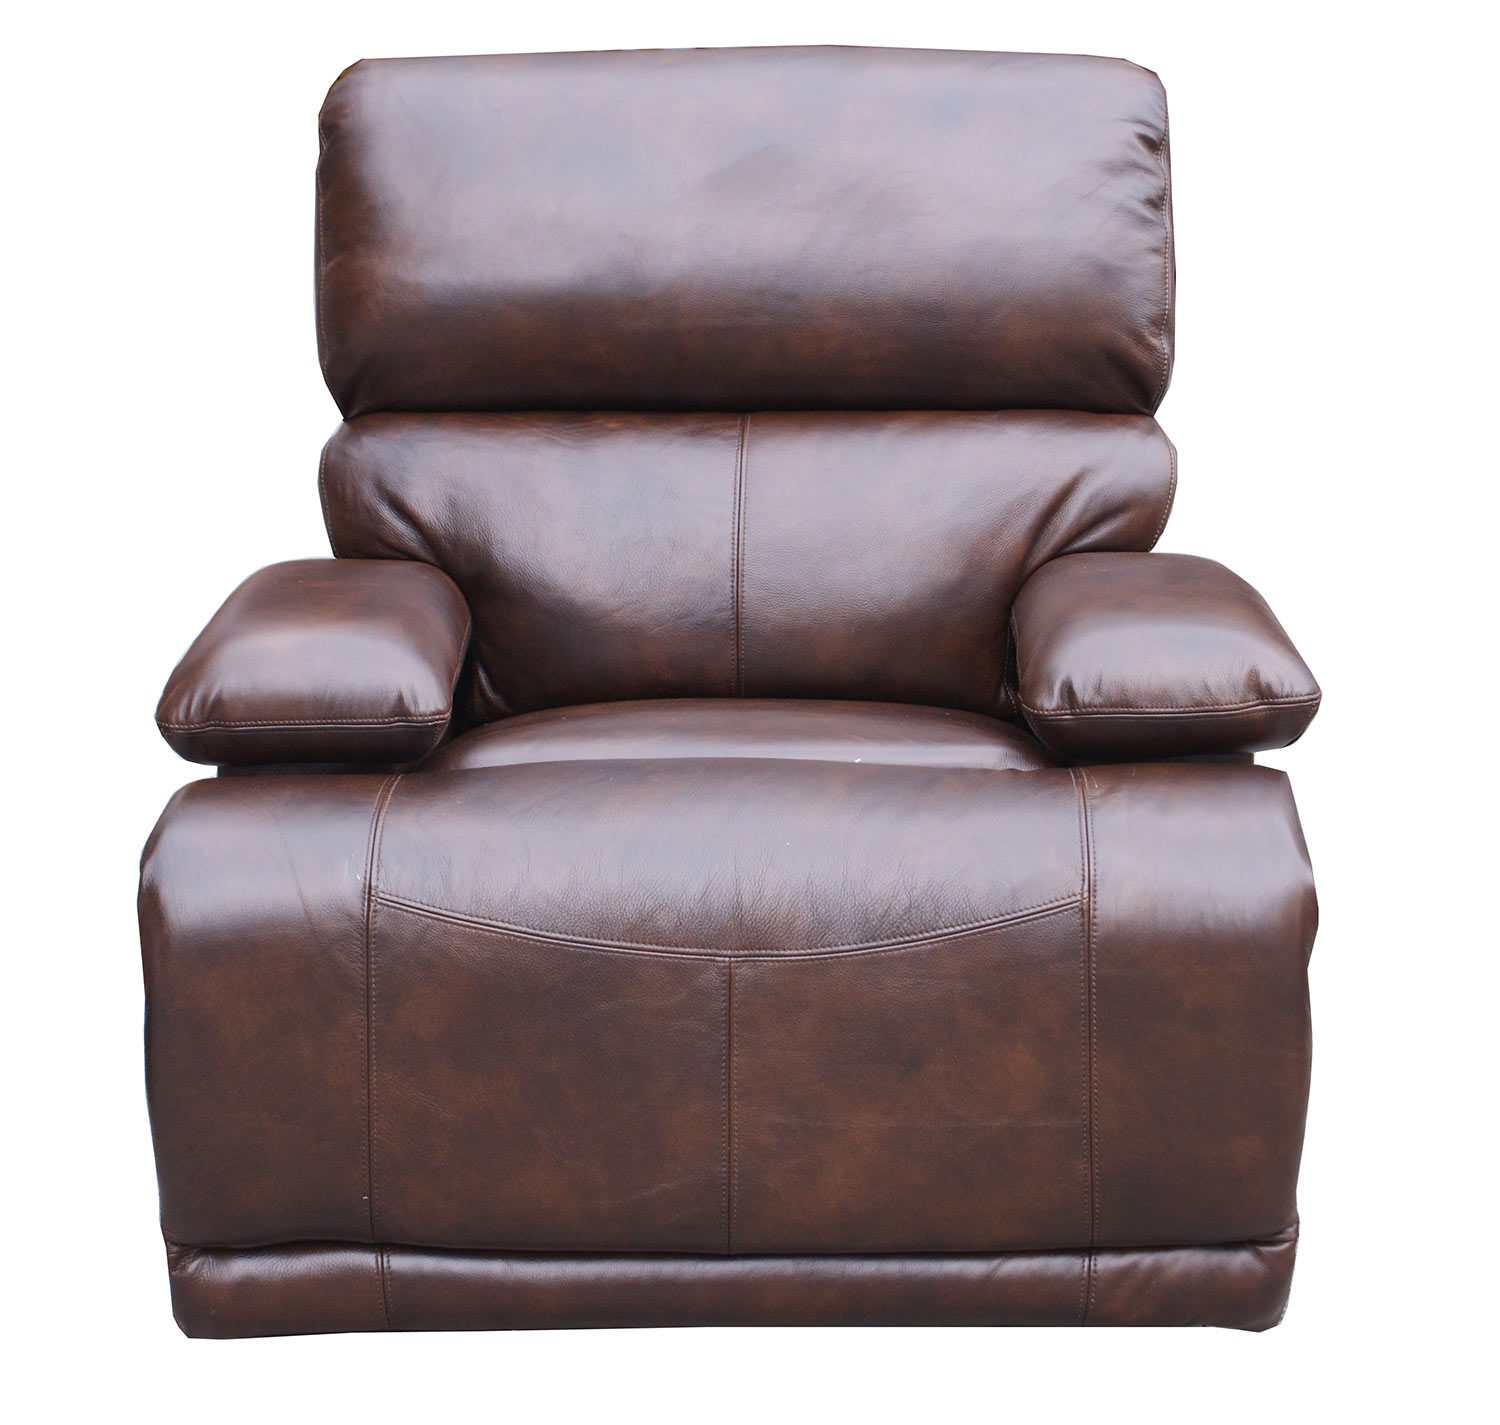 Barcalounger Hudson ll Casual Comforts Power Reclining Sofa Set  sc 1 st  Homelement.com : barcalounger power recliner - islam-shia.org